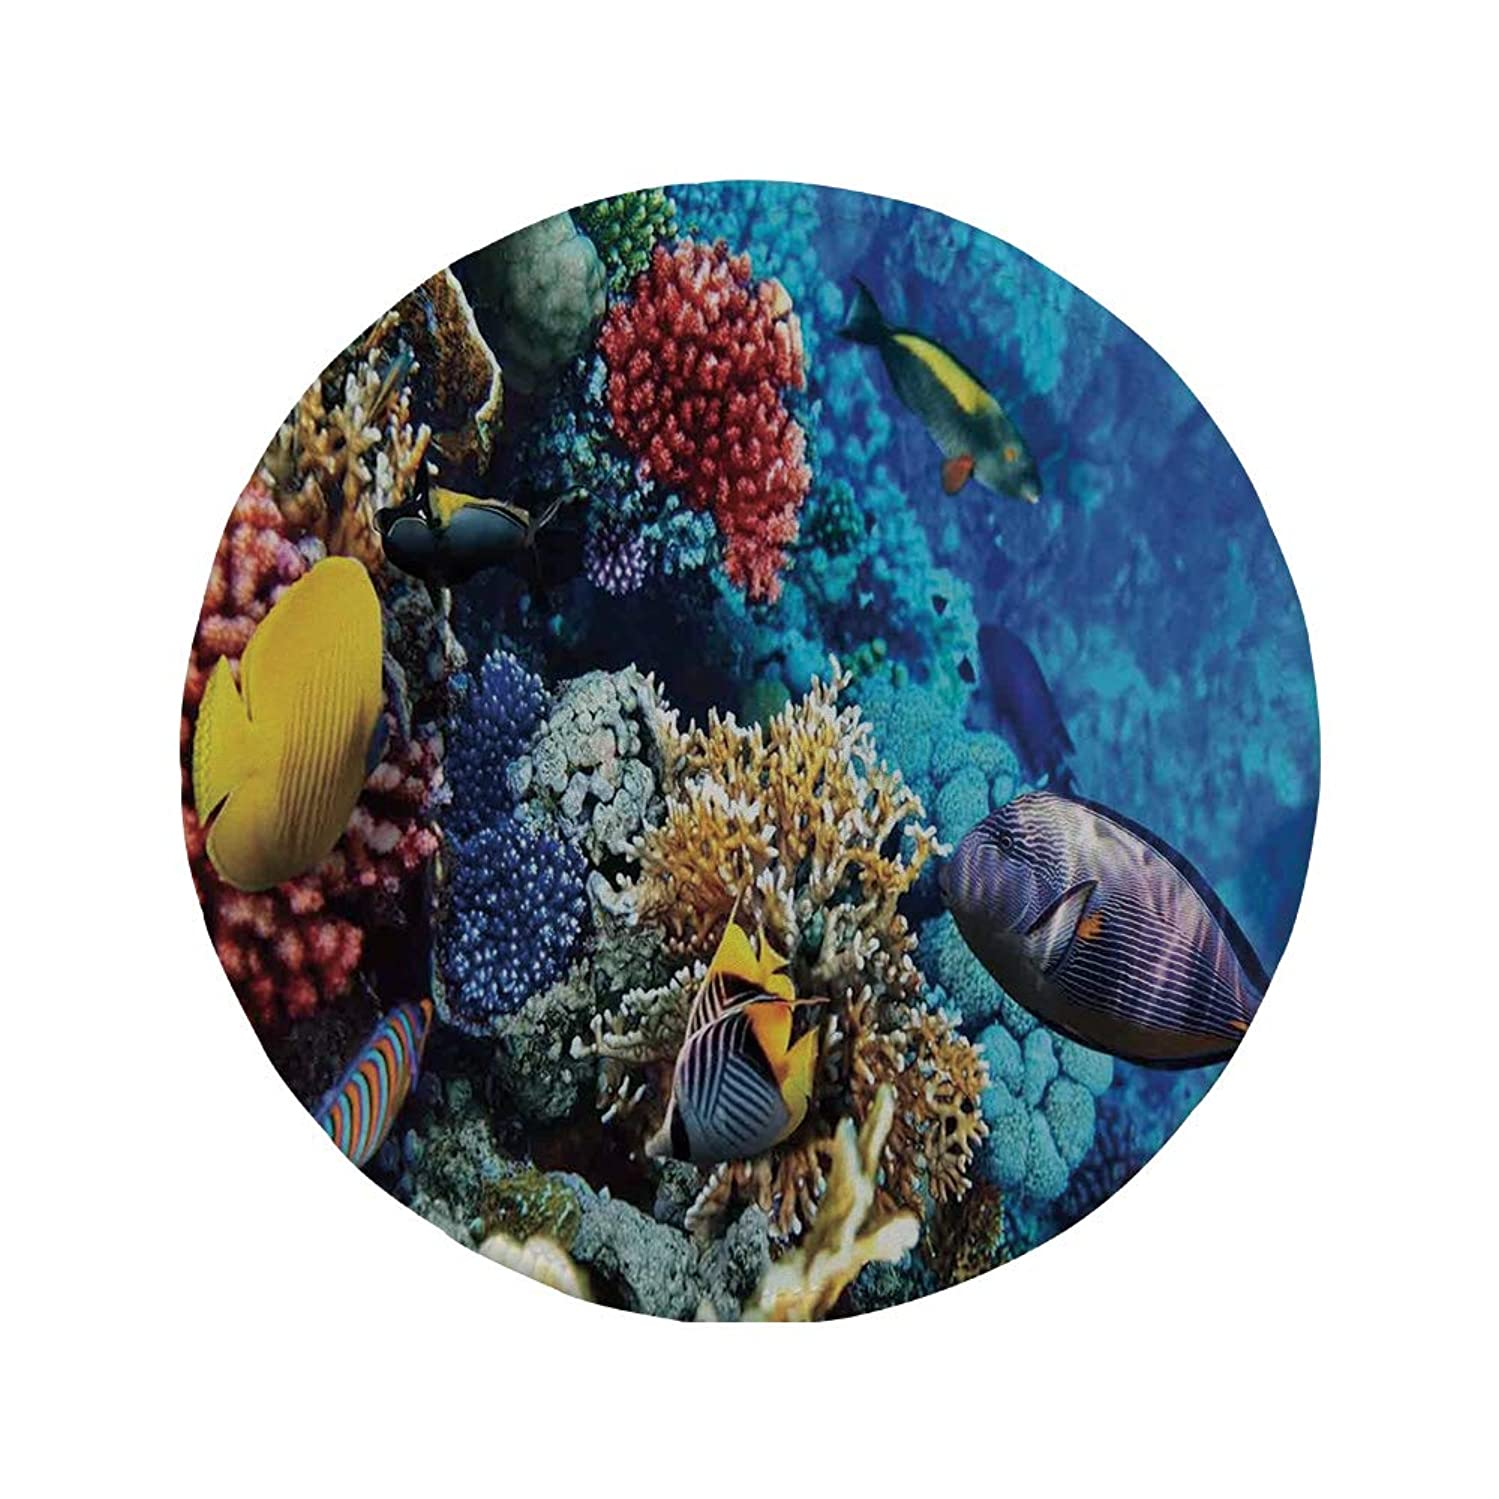 Non-Slip Rubber Round Mouse Pad,Ocean,Wild Sea Life Colorful Corals and Fishes in Egyptian Sea Sharm El Sheikh Africa Image,Multicolor,11.8